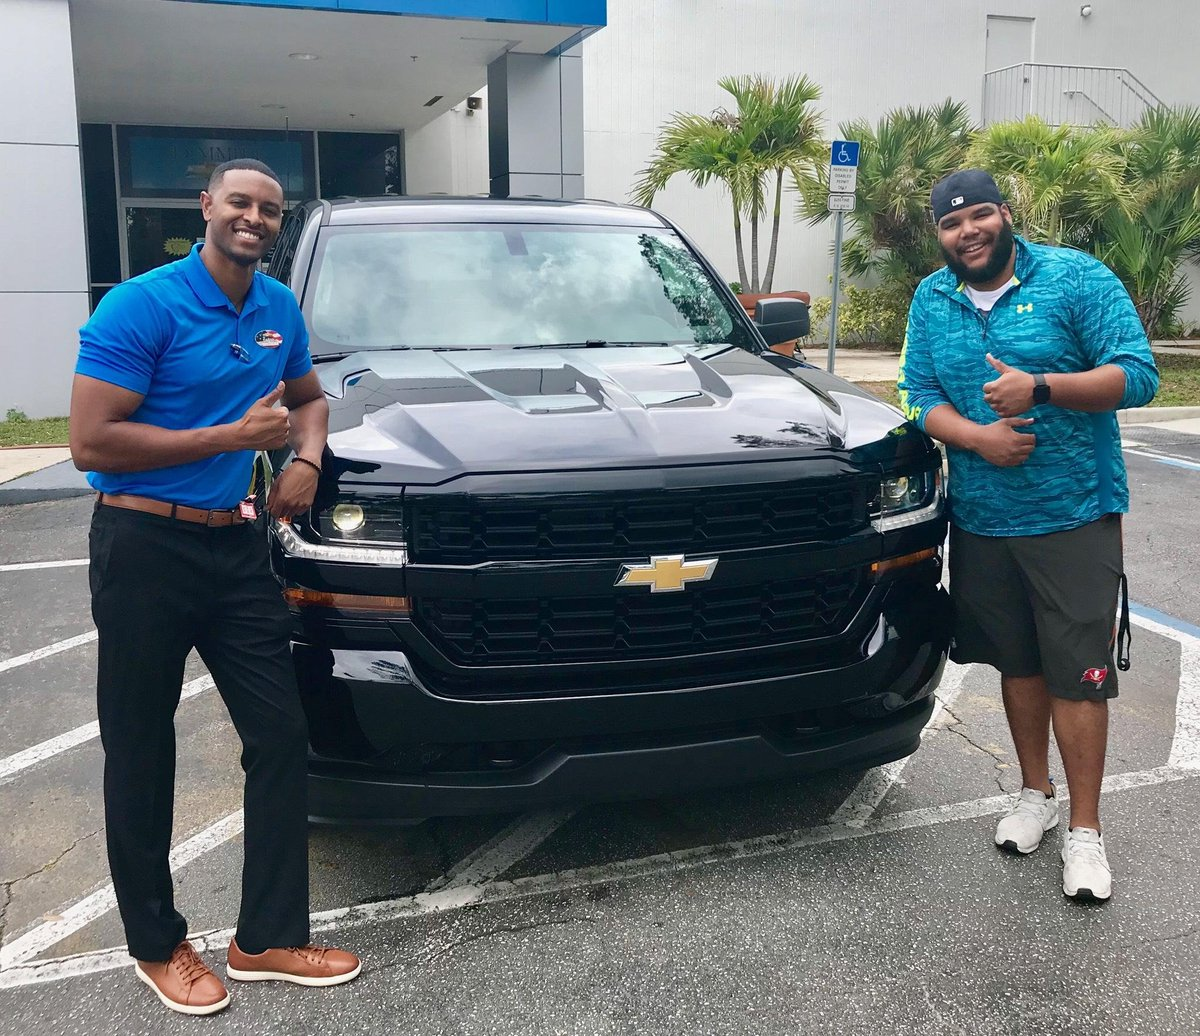 Dimmitt Chevrolet On Twitter Congratulations To Damon On The Purchase Of His New Chevy Silverado We Love Happy Customers With Danny Tartabull Jr At Dimmitt Chevrolet Dimmittchevrolet Dimmittfam Happycustomer Https T Co U2qk9fmd2z